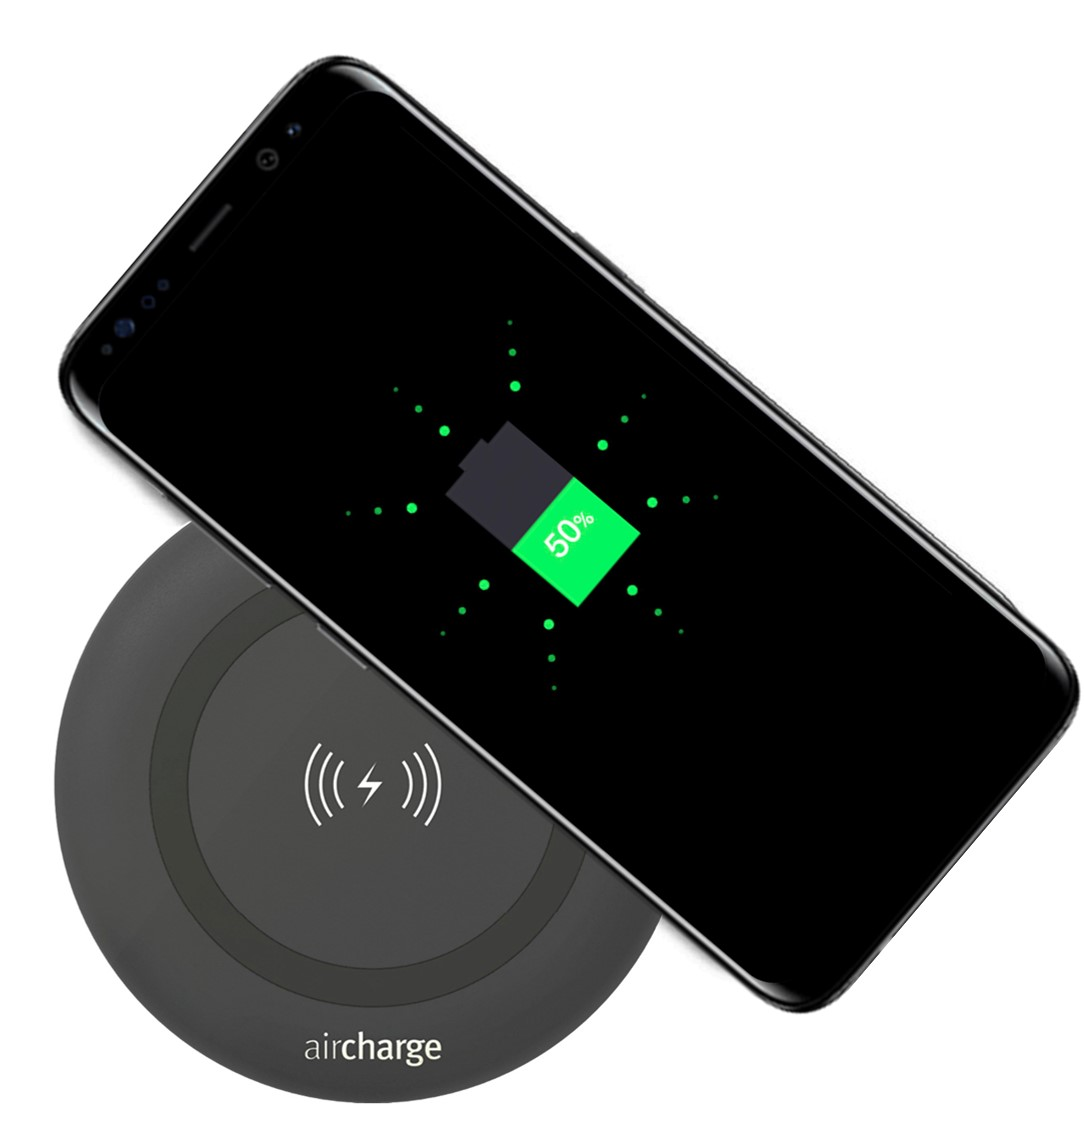 aircharge samsung galaxy s8 and s8 plus feature qi wireless charging. Black Bedroom Furniture Sets. Home Design Ideas